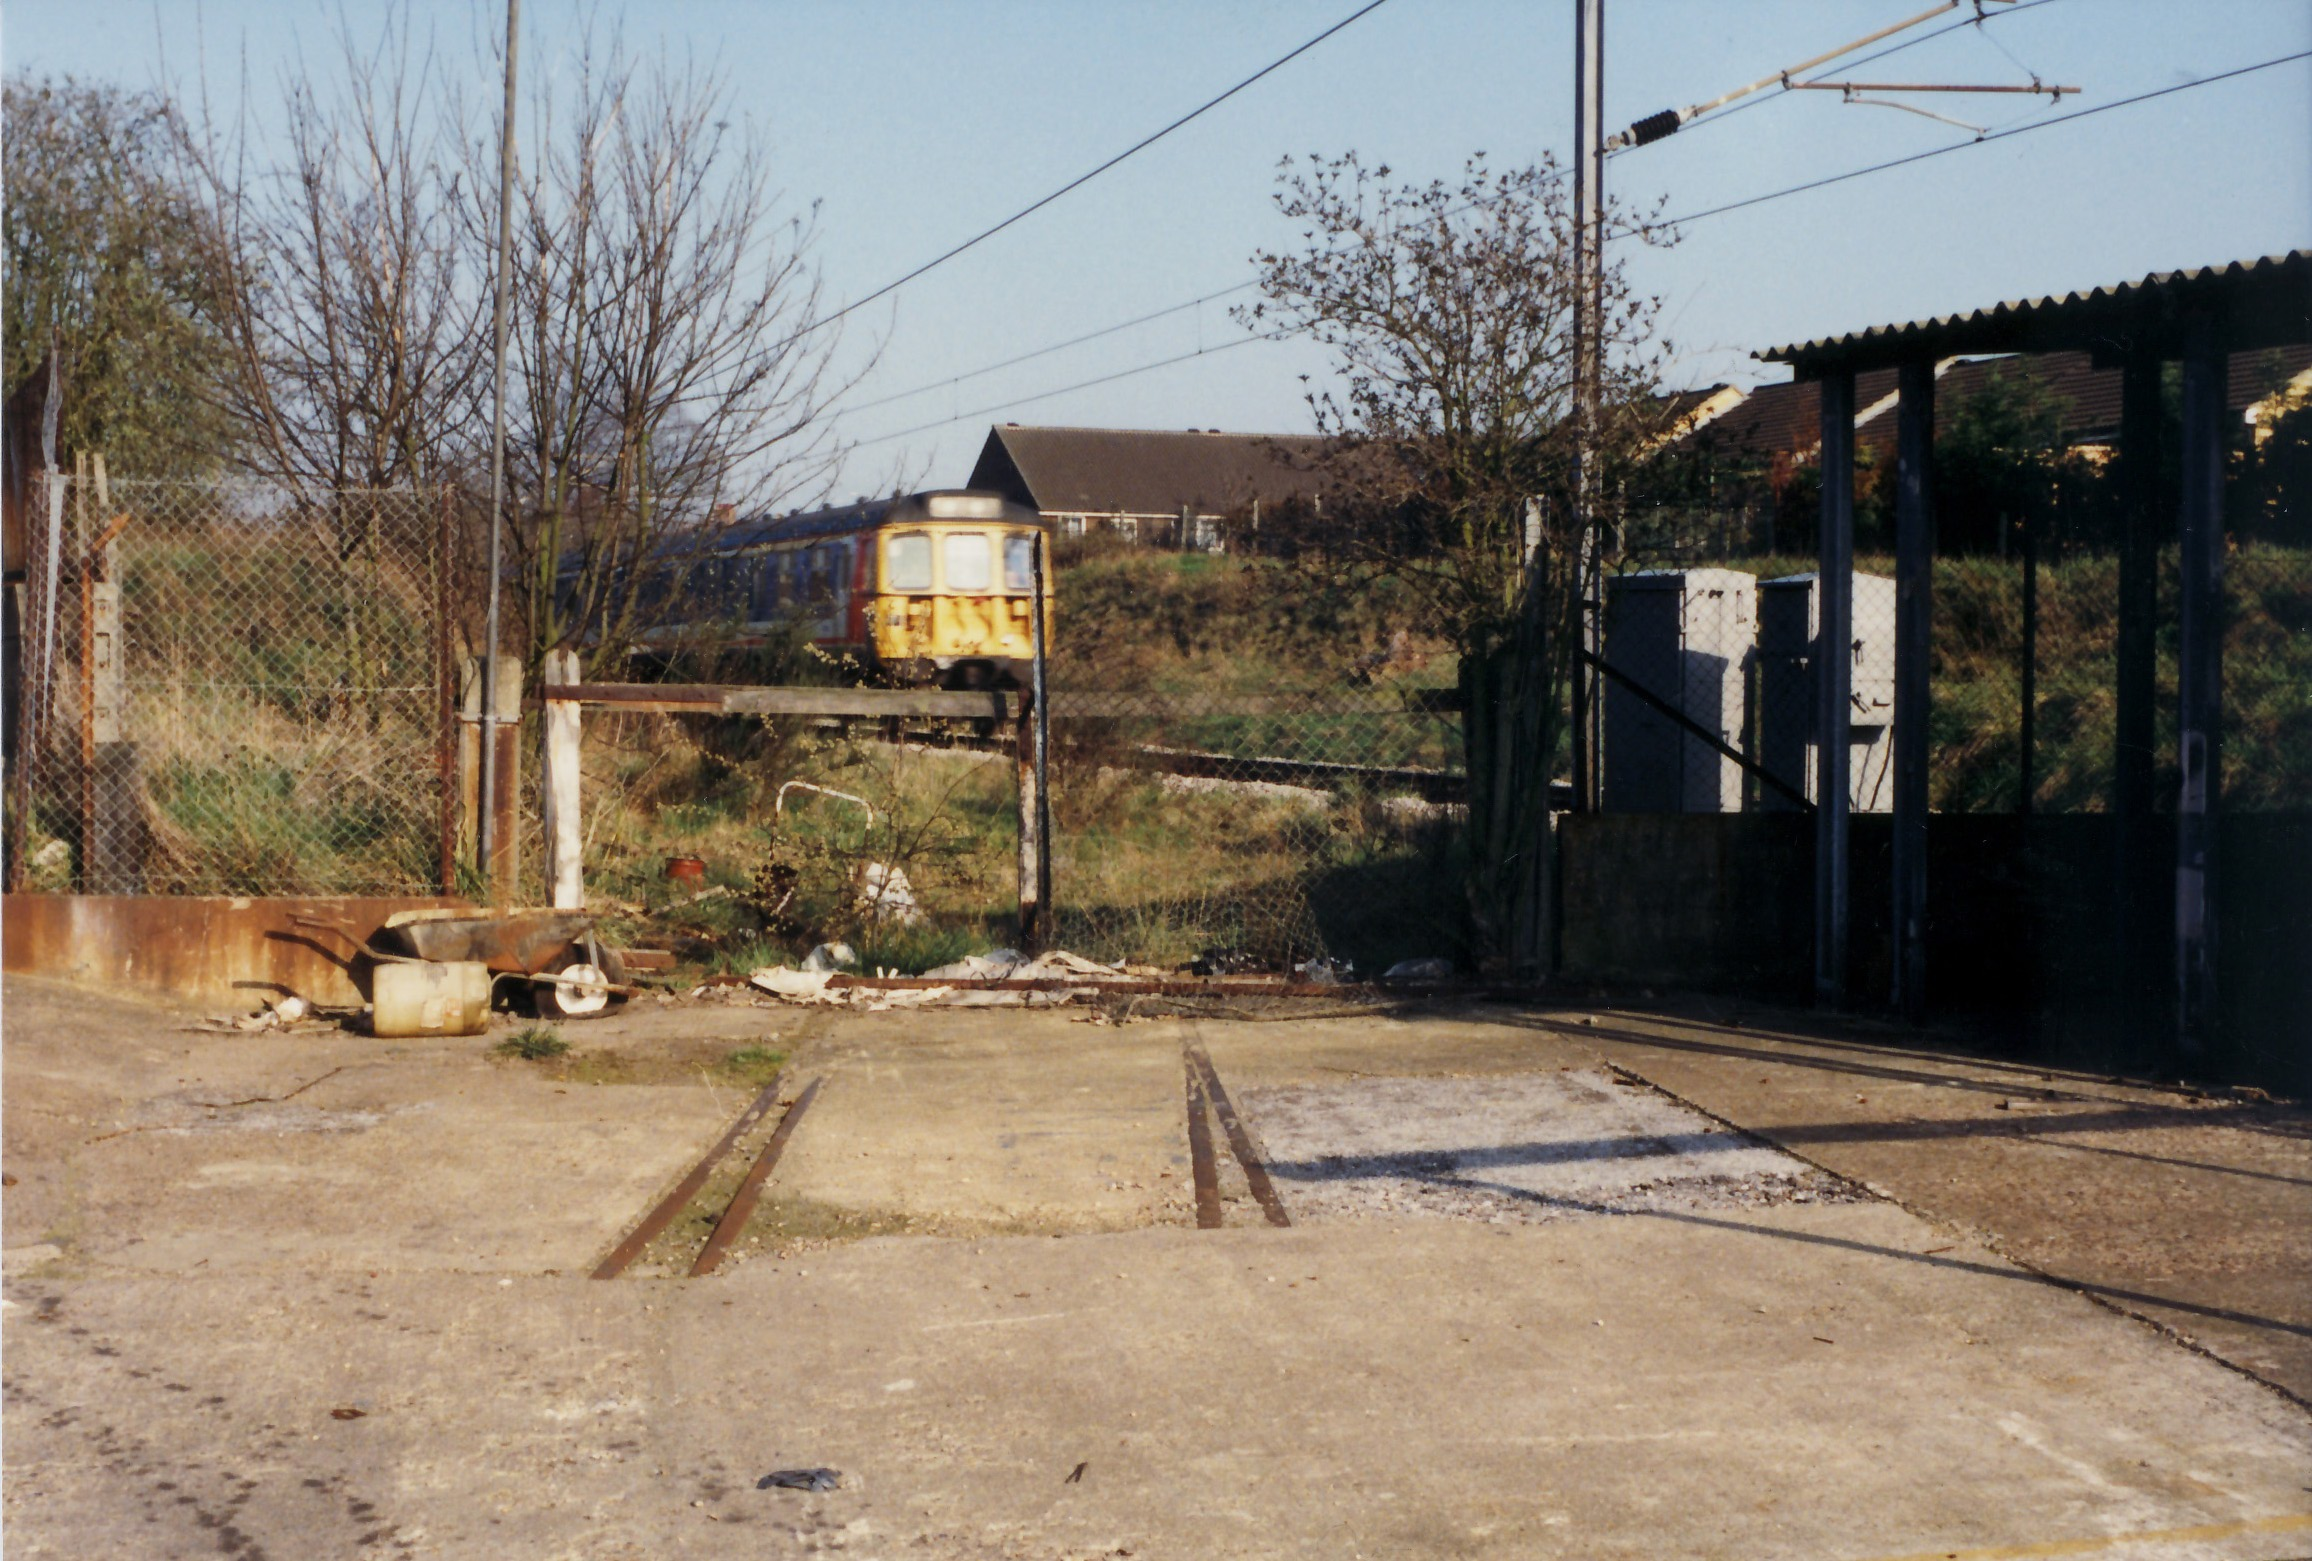 p-066-04-crittalls-outdoors-train-and-tracks-to-factory